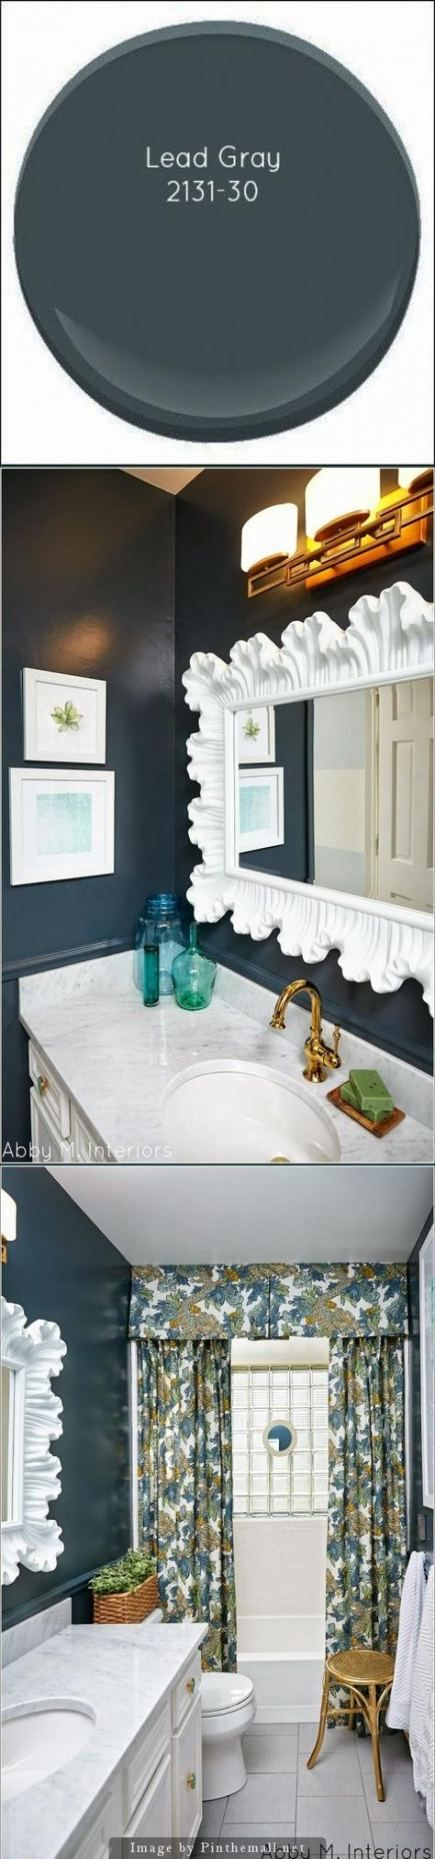 26 ideas for house exterior navy benjamin moore on benjamin moore exterior house ideas id=70045